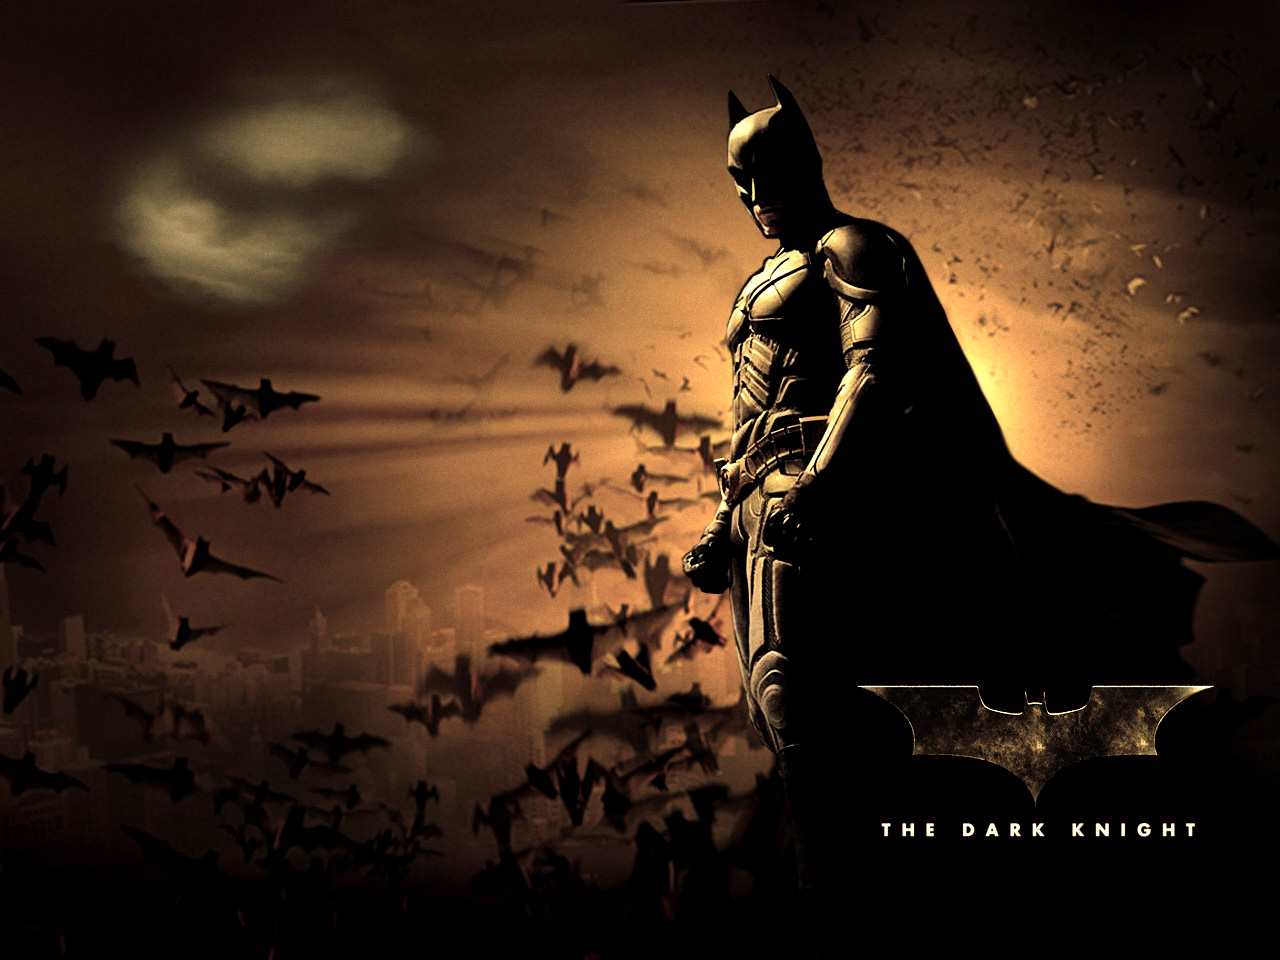 Papel de parede batman wallpaper para download no celular for Papel de pared negro